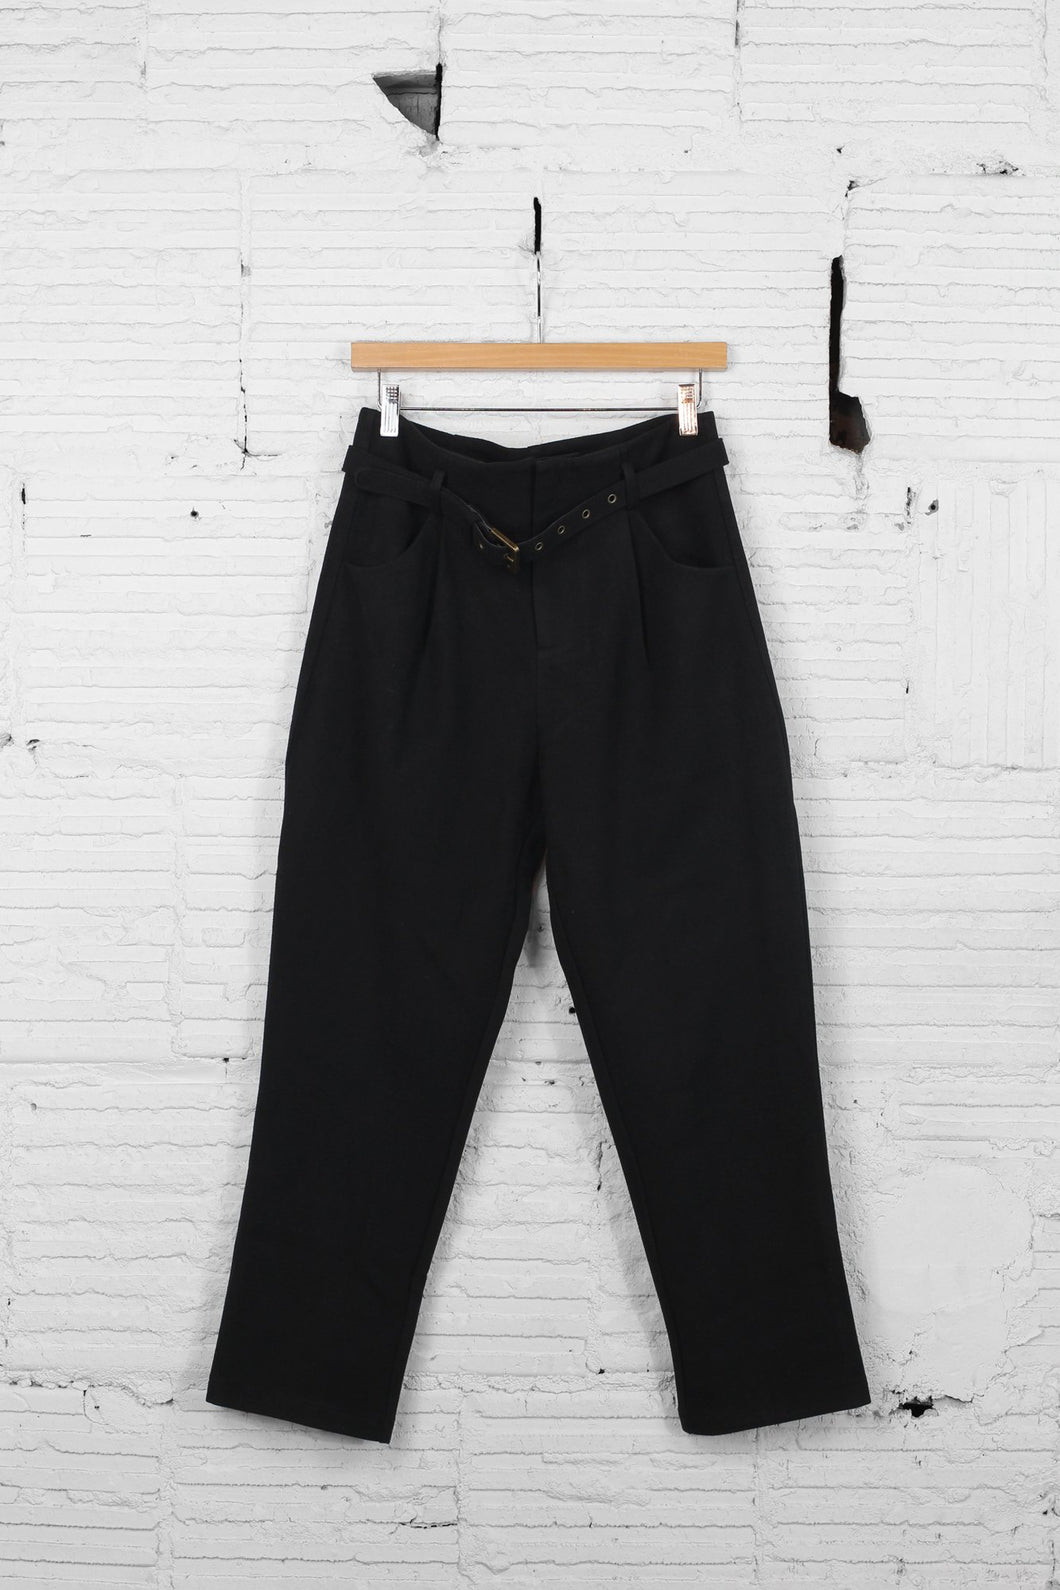 Molly Bracken Cropped Trouser